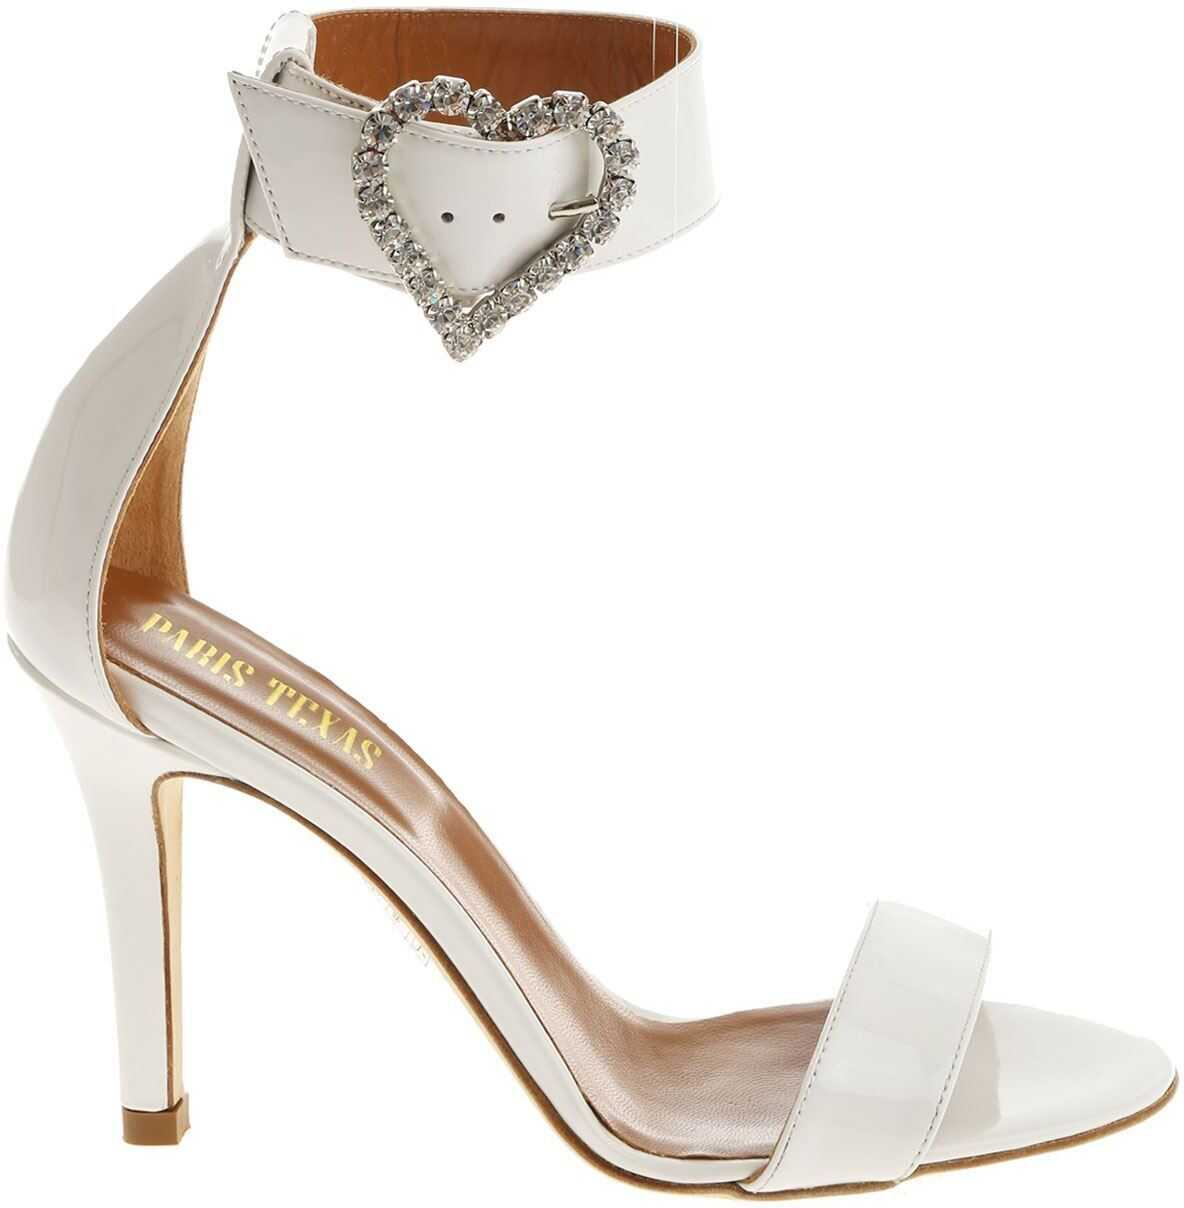 White Patent Leather Sandals With Rhinestones